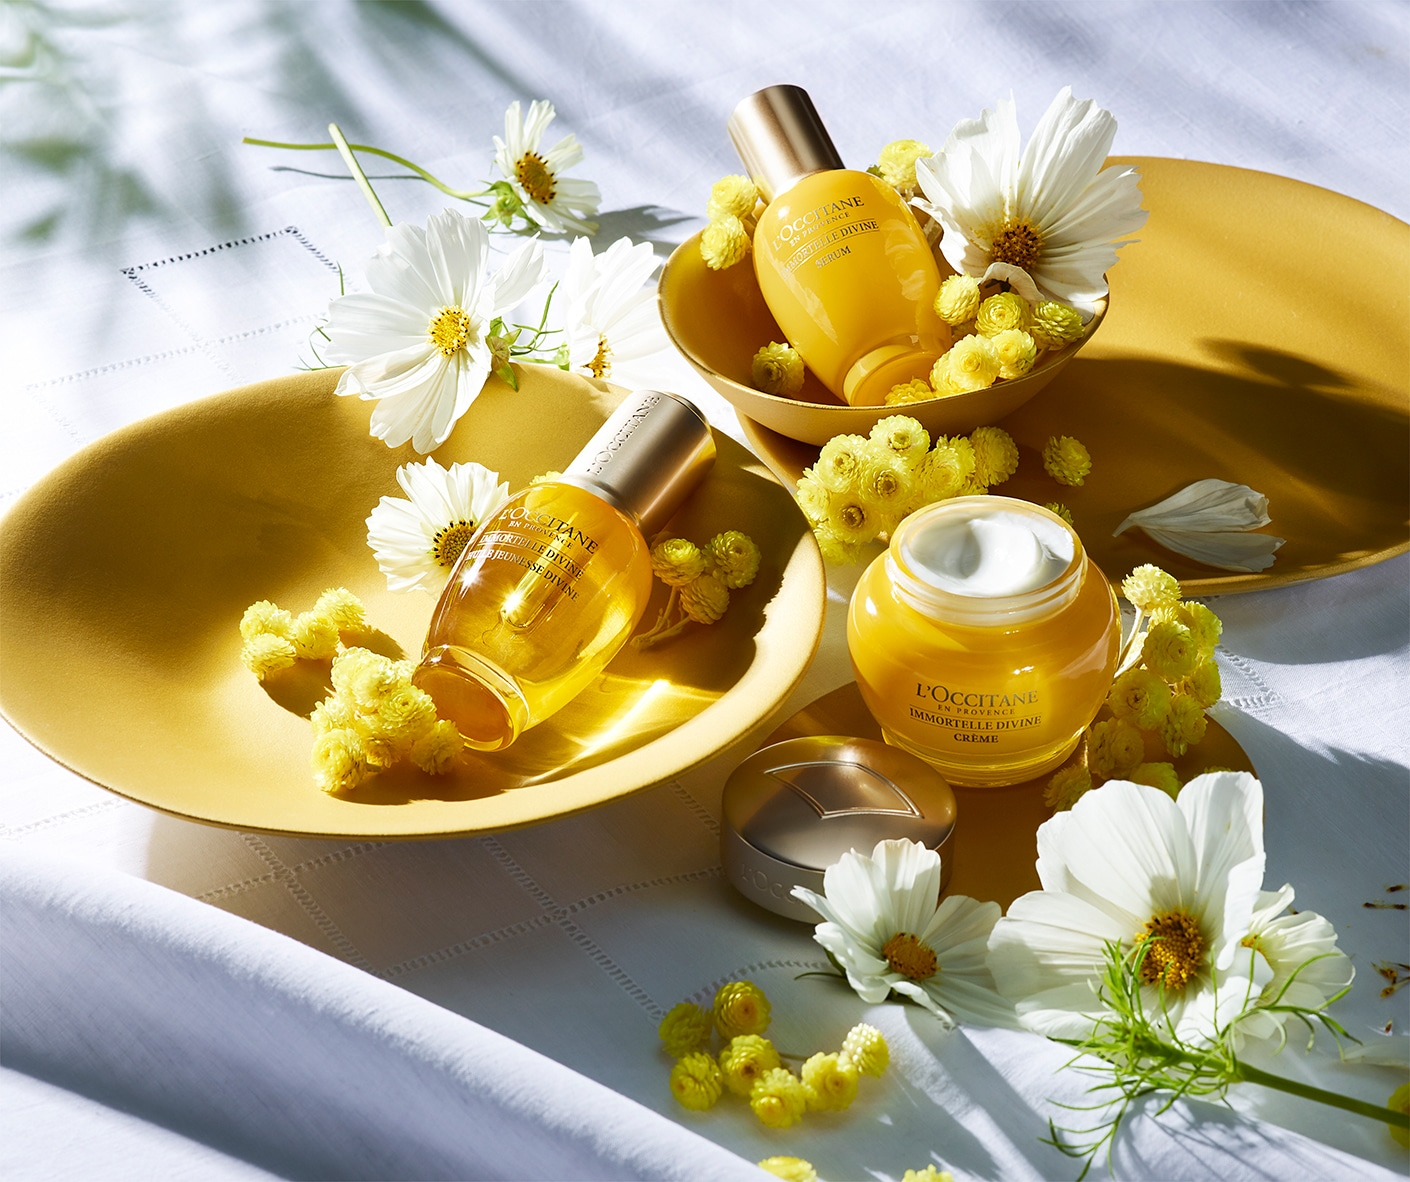 Collection Divine - l'occitane